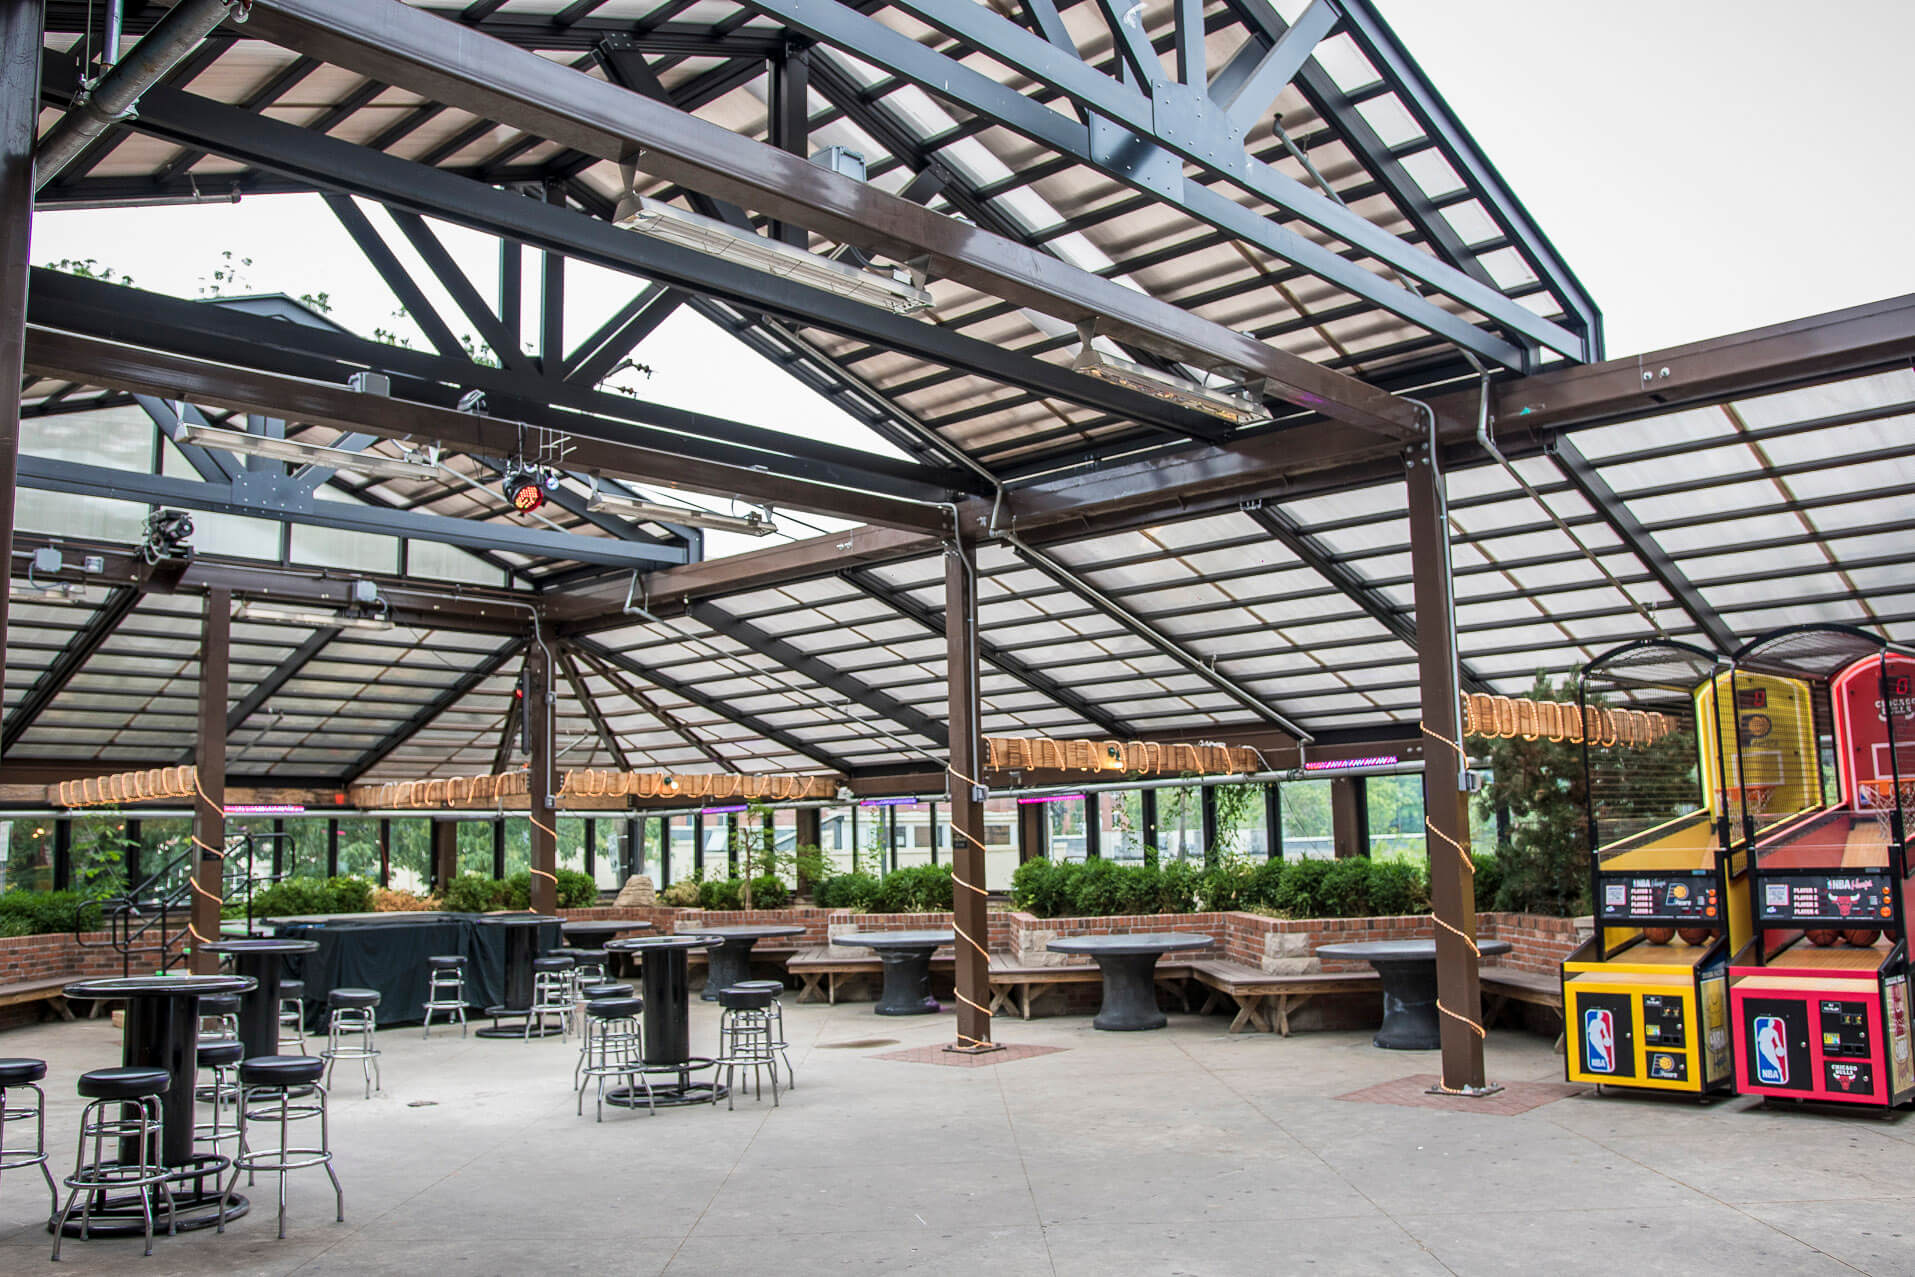 Kilroys outdoor patio with retractable roof and opening walls